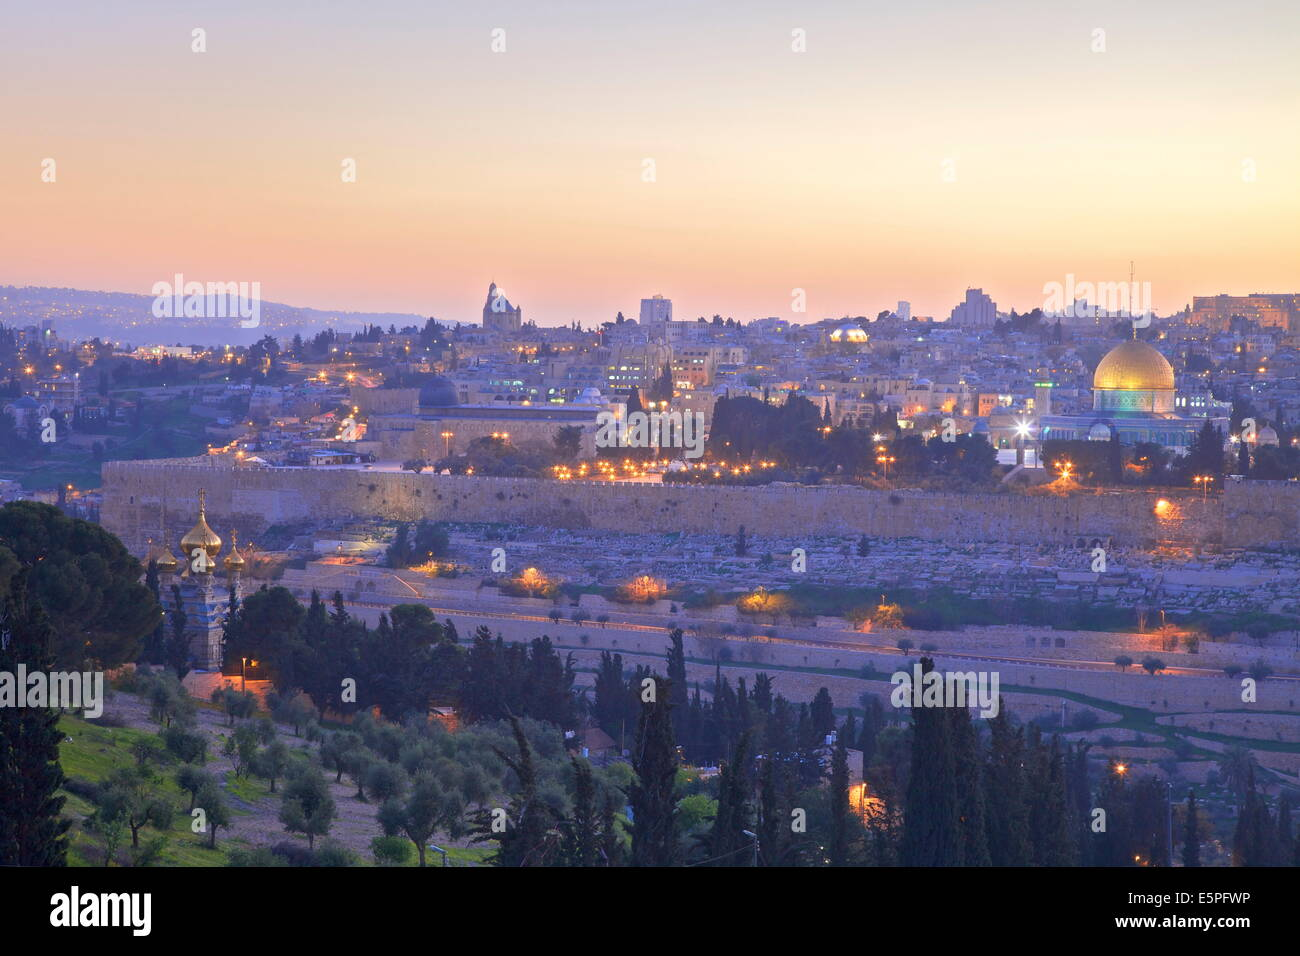 View of Jerusalem from The Mount of Olives, Jerusalem, Israel, Middle East Stock Photo